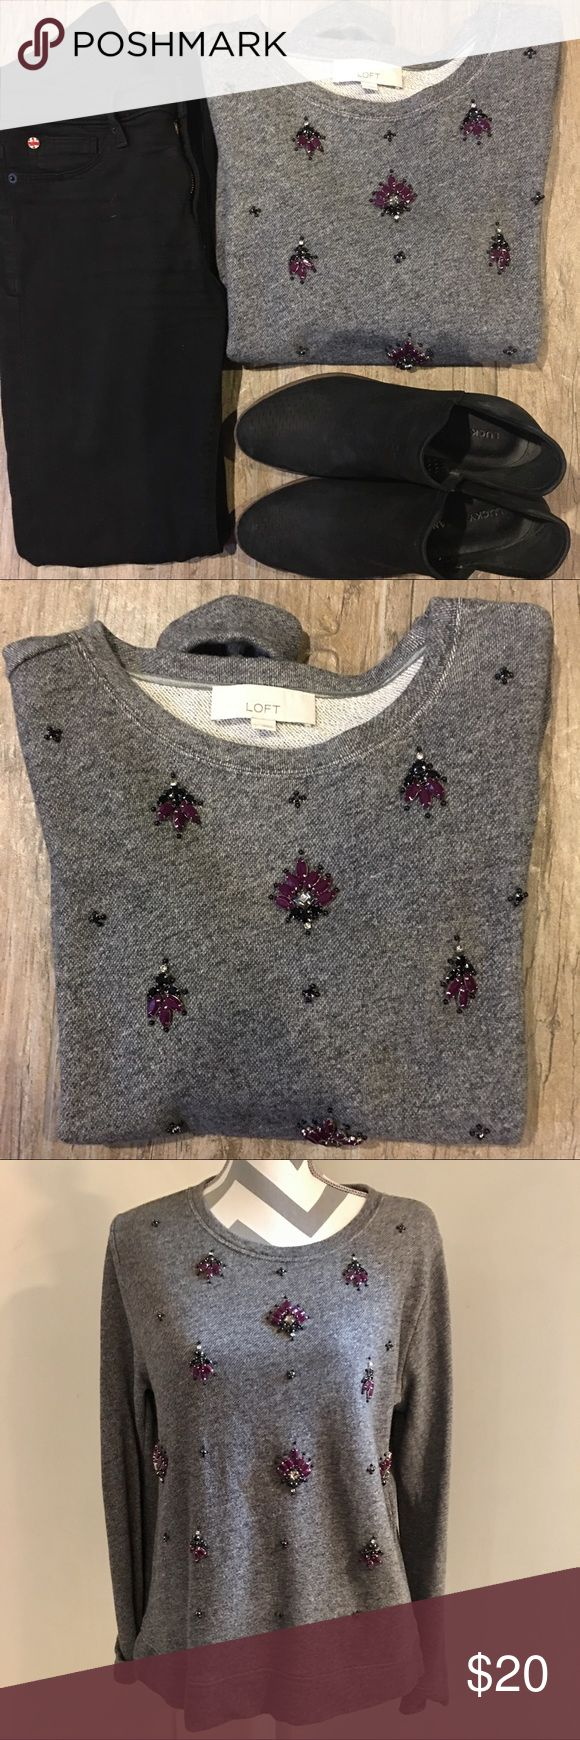 • loft • embellished sweatshirt A dark heather gray sweatshirt with black & plum beading and rhinestones. Throw on with yoga pants or jeans for a quick, easy and super cute outfit! EUC; hang dried only. 100% cotton. LOFT Tops Sweatshirts & Hoodies